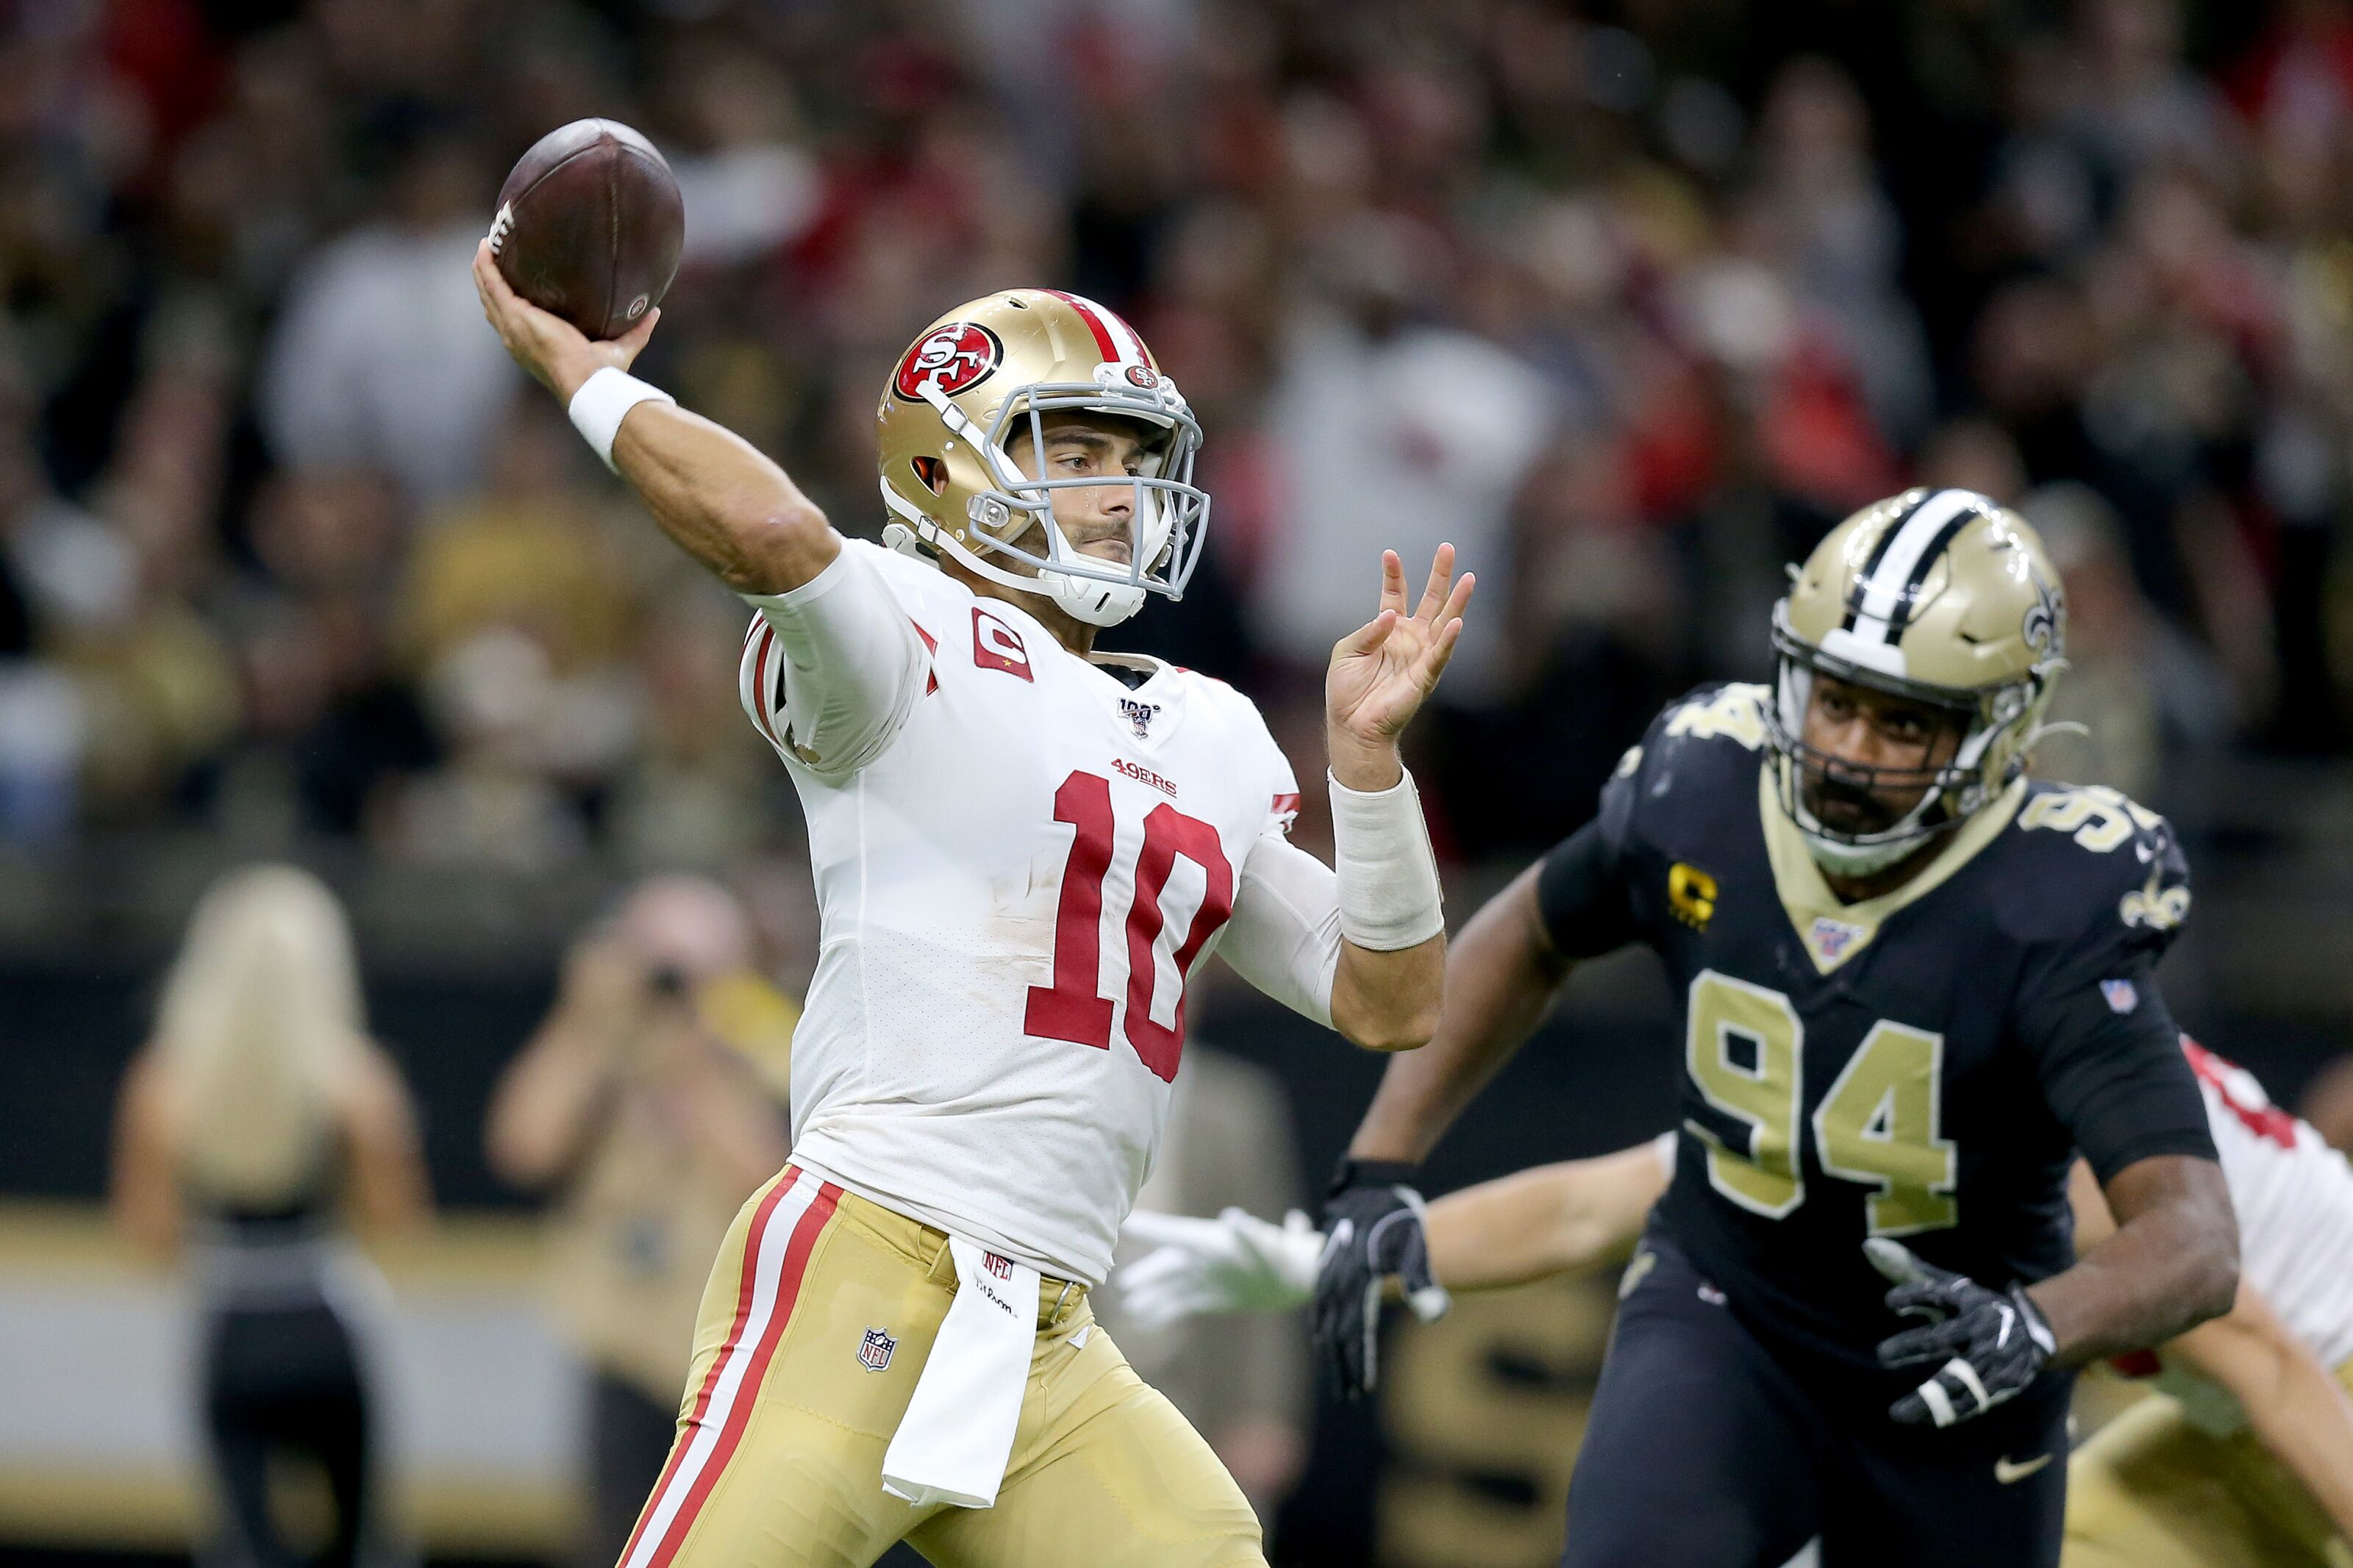 Packers' chances of first-round bye improve with 49ers win